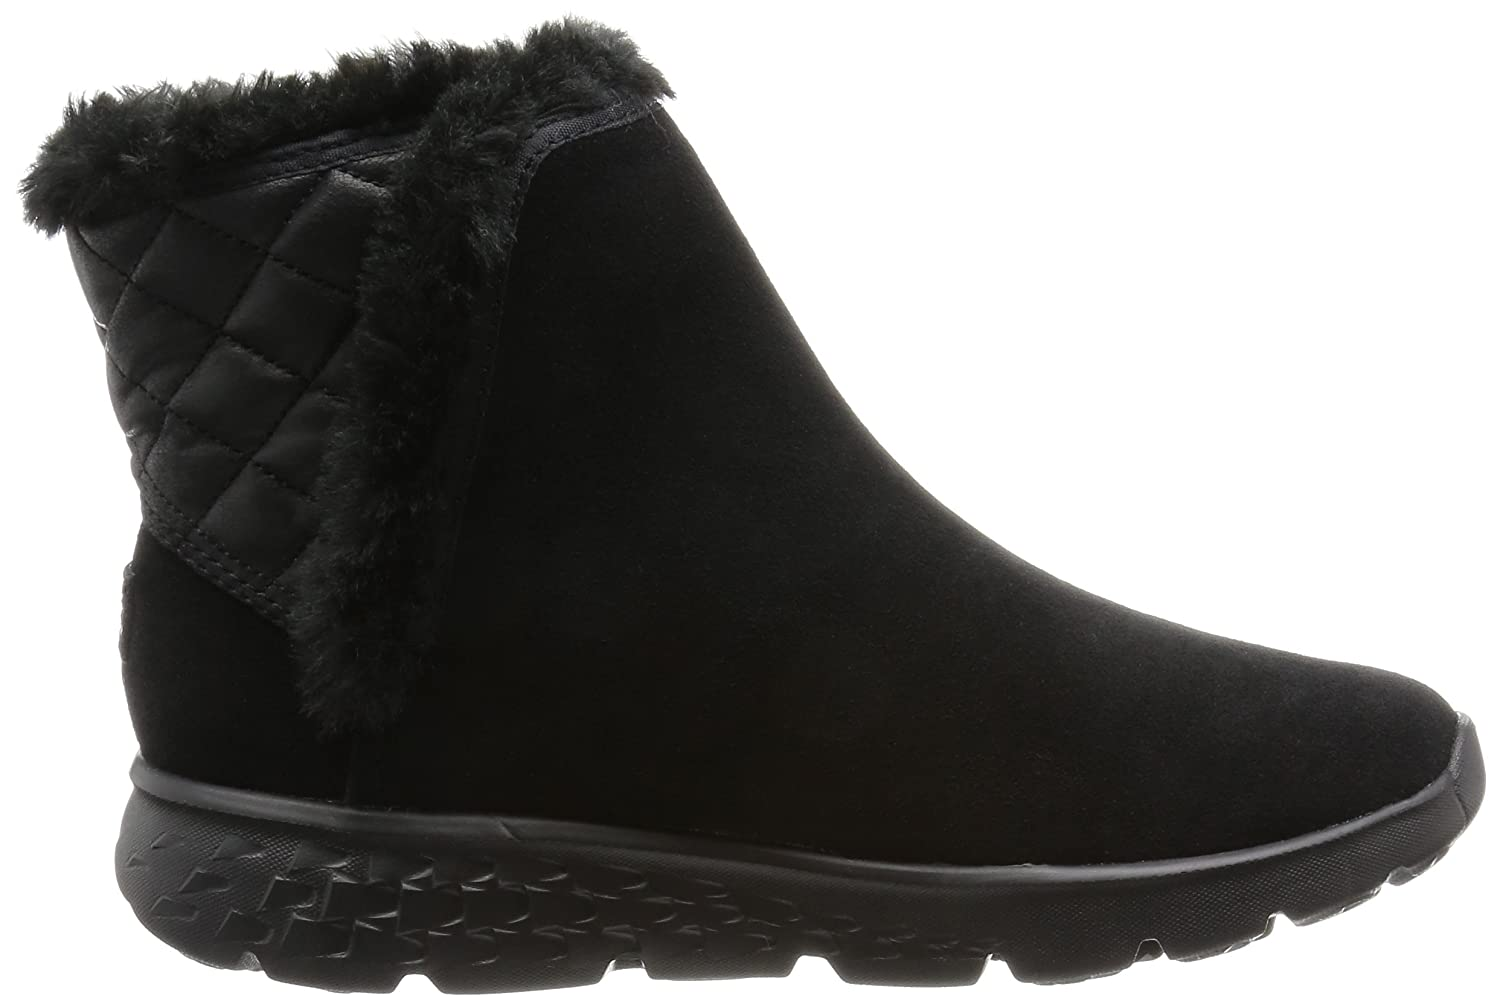 Skechers Performance Women's On The Go 400 Cozies B(M) Winter Boot B01B2VNLFG 7 B(M) Cozies US|Black 1ca437